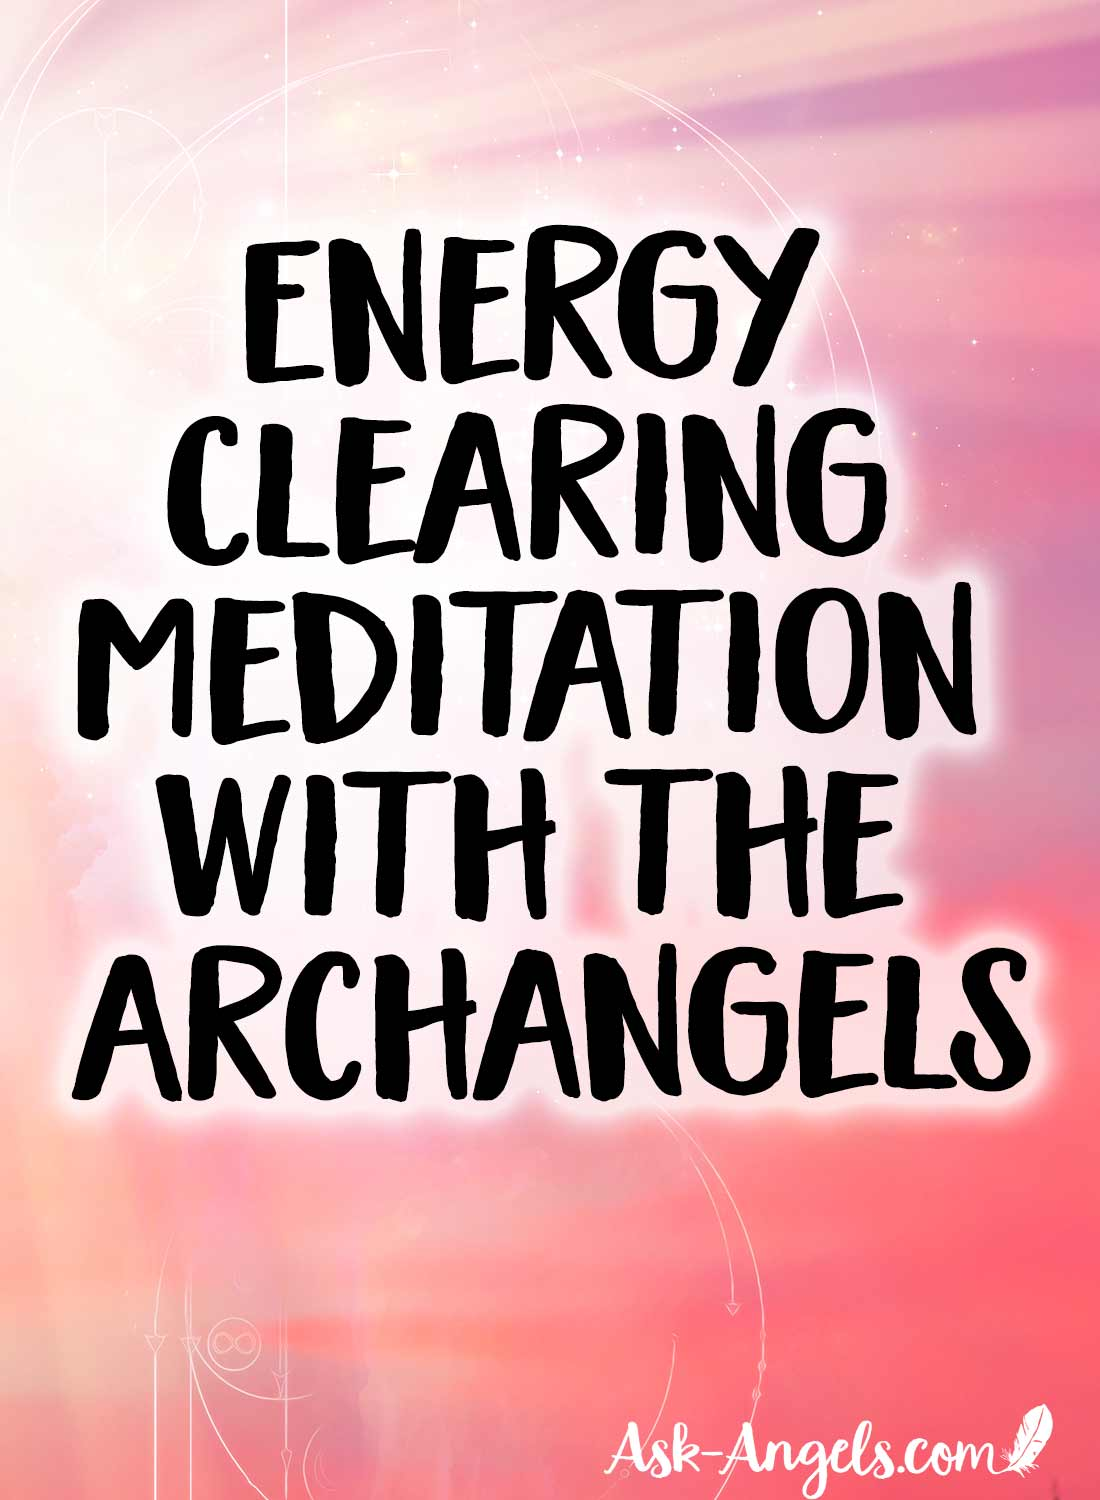 Energy Clearing Meditation with the Archangels